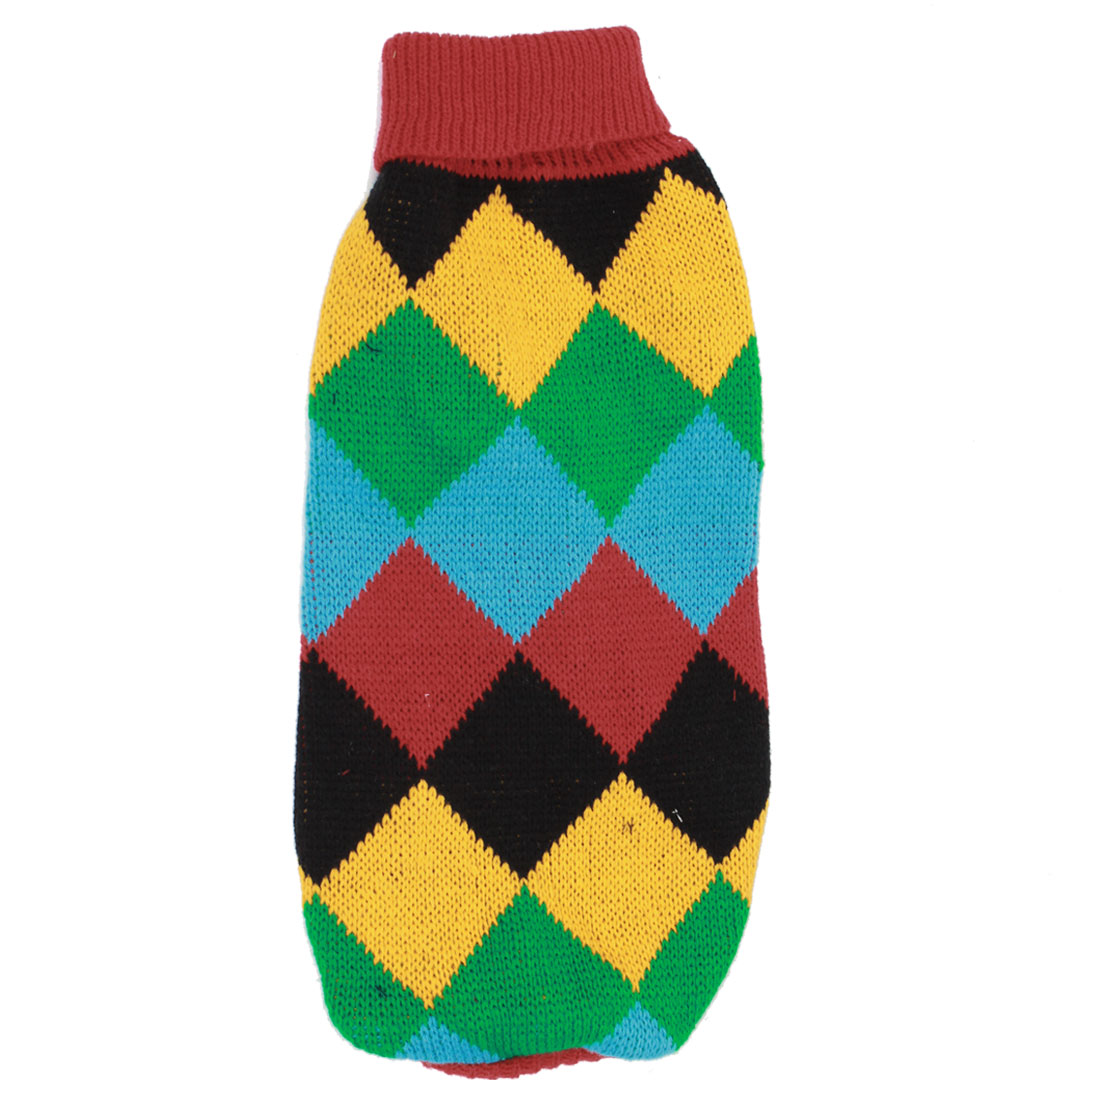 Pet Dog Chihuahua Ribbed Cuff Knitwear Turtleneck Apparel Coat Sweater Multi Color Size S